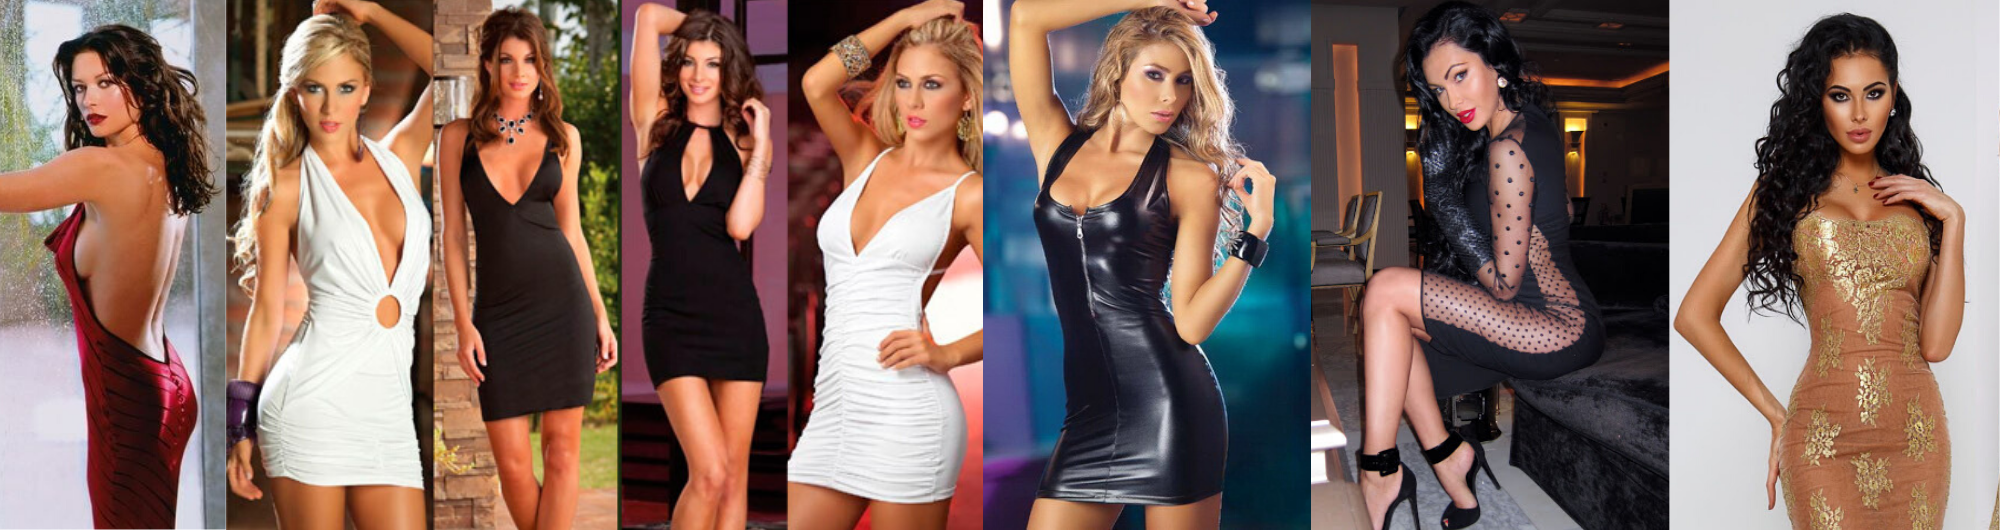 erotic style - How to dress for a party?